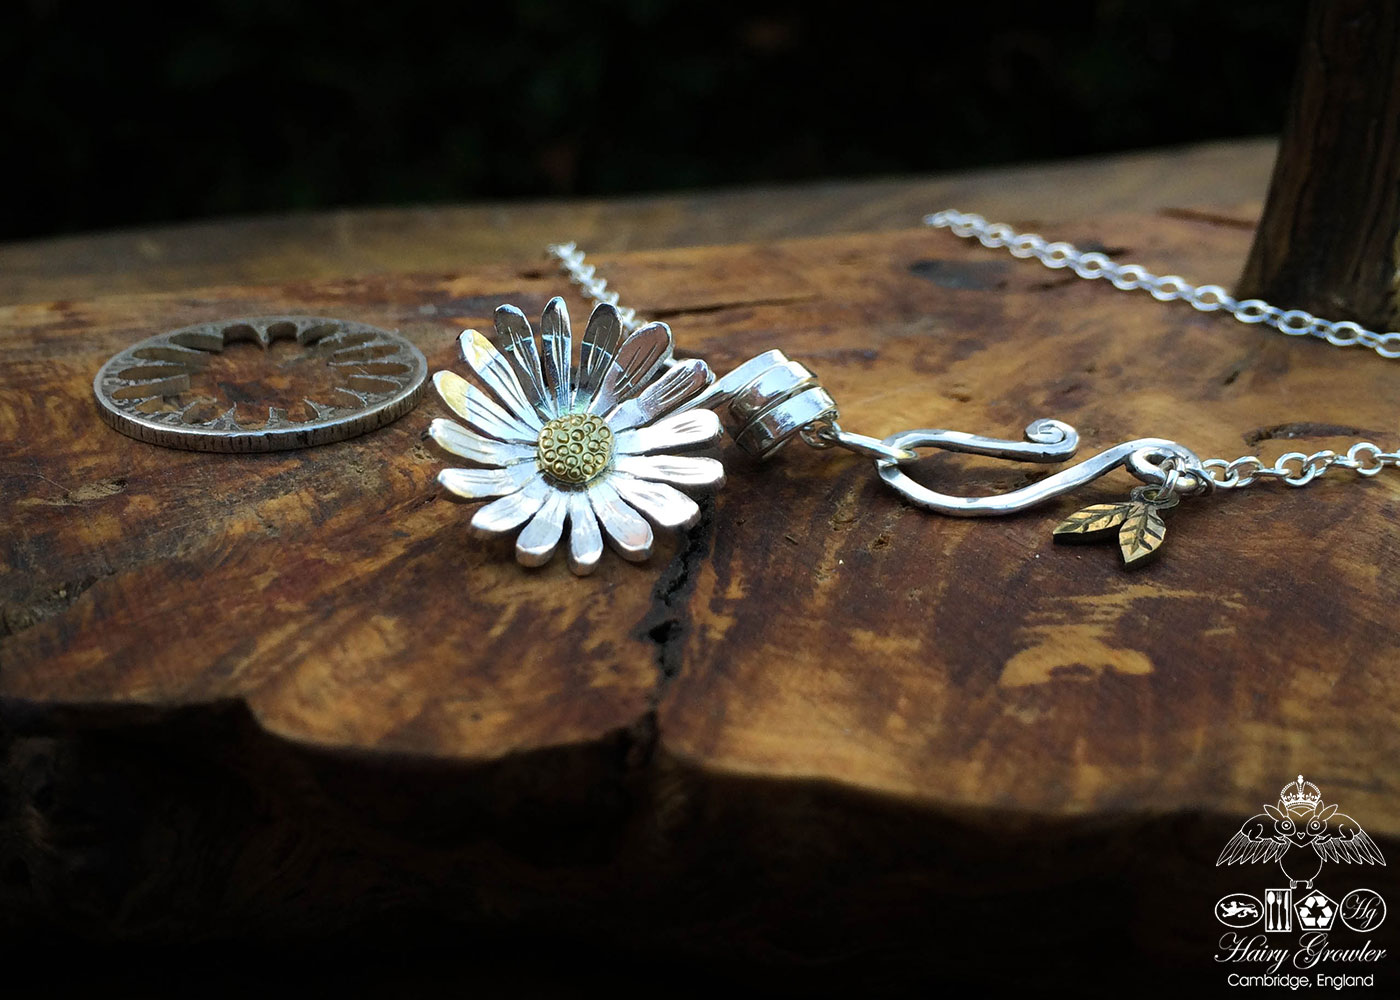 Handcrafted and repurposed sterling silver shilling daisy necklace